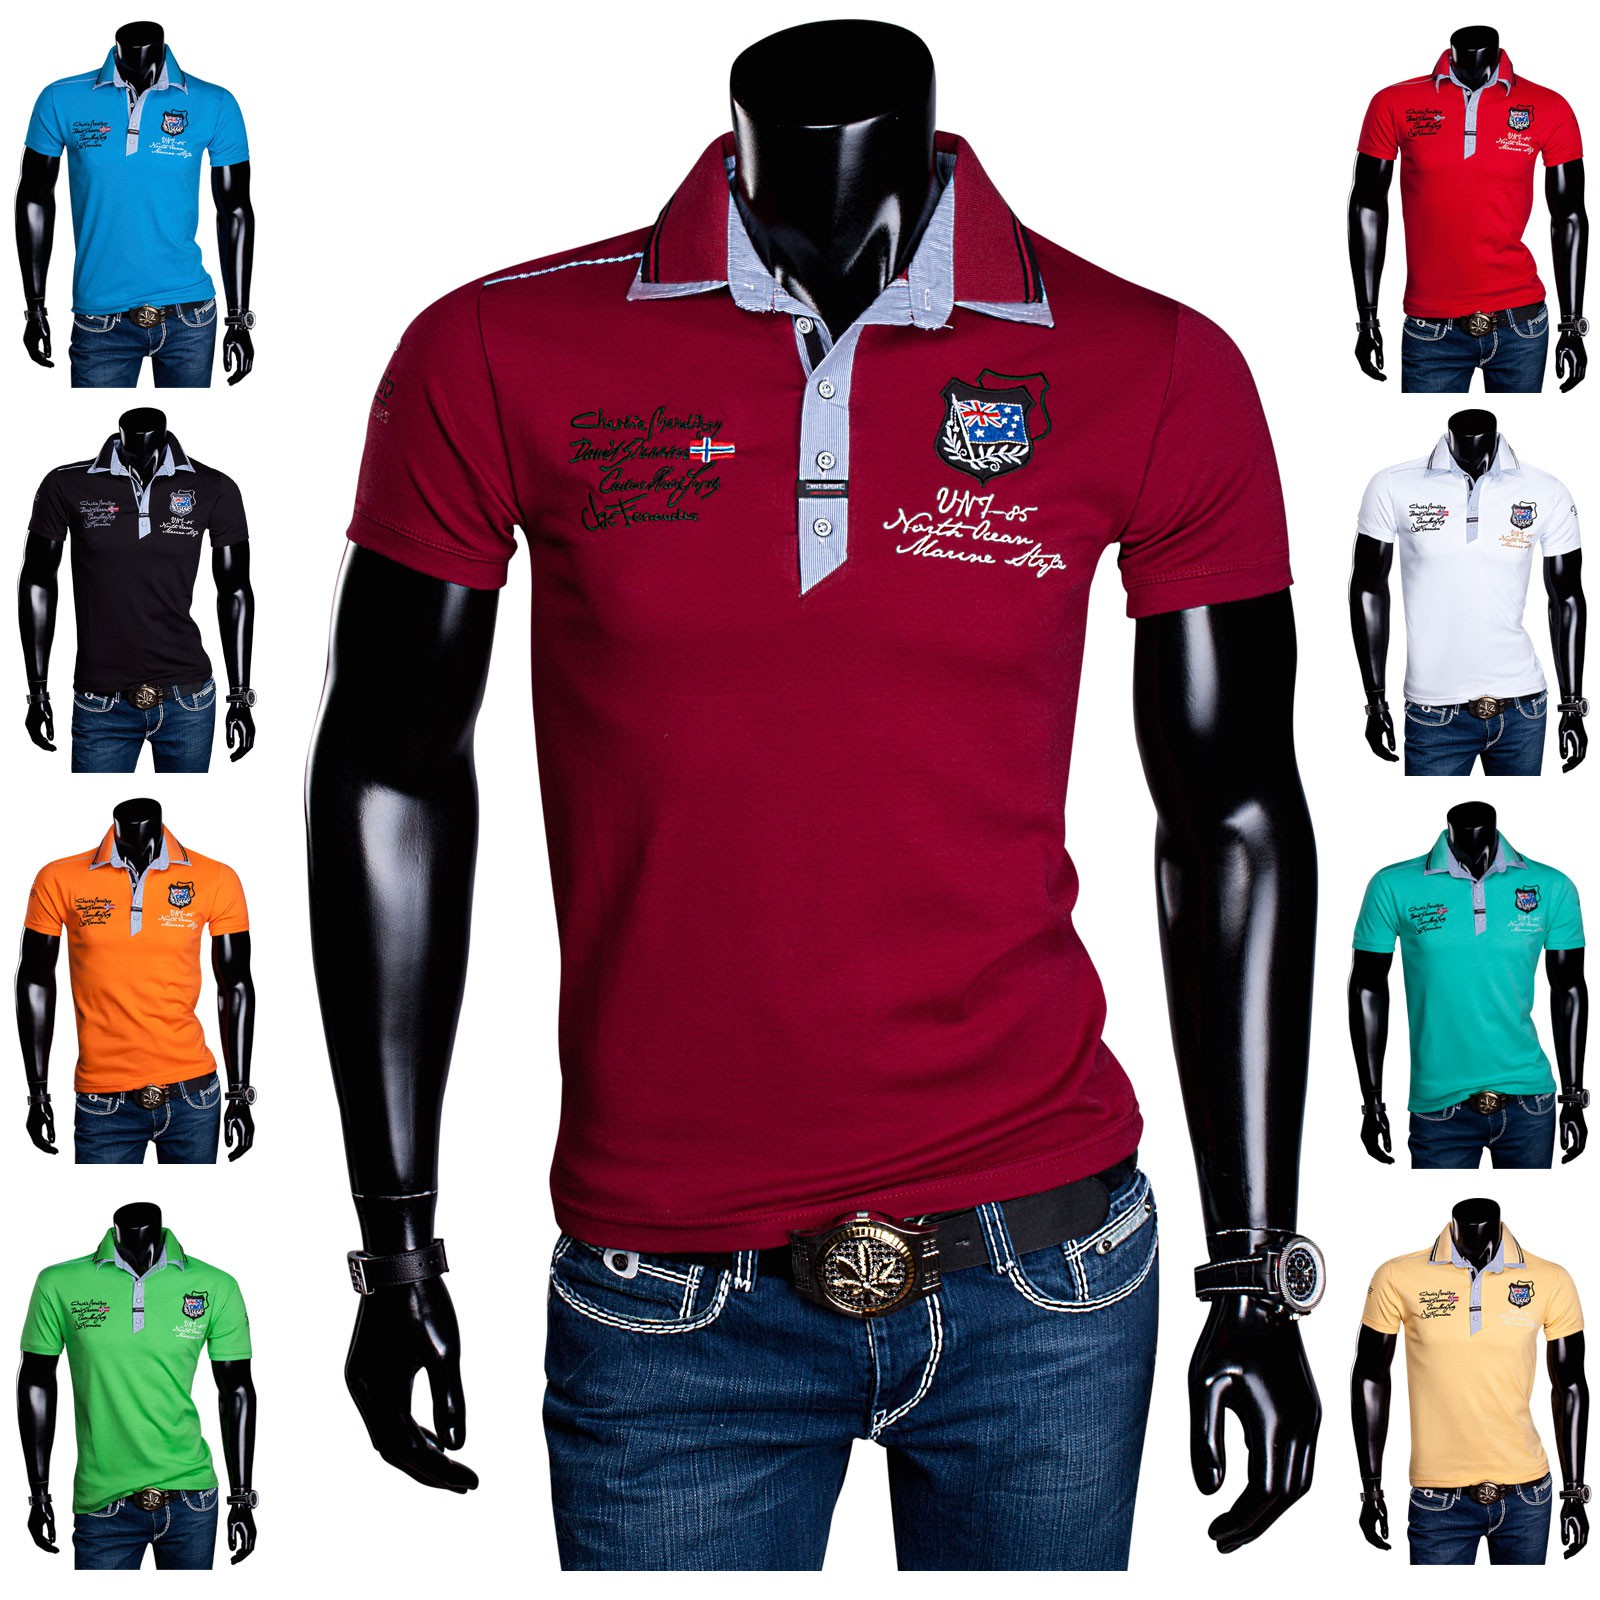 big sale 49ae0 ac6df Herren T-Shirt Poloshirt Party Doppelkragen Violento Polo Sommer